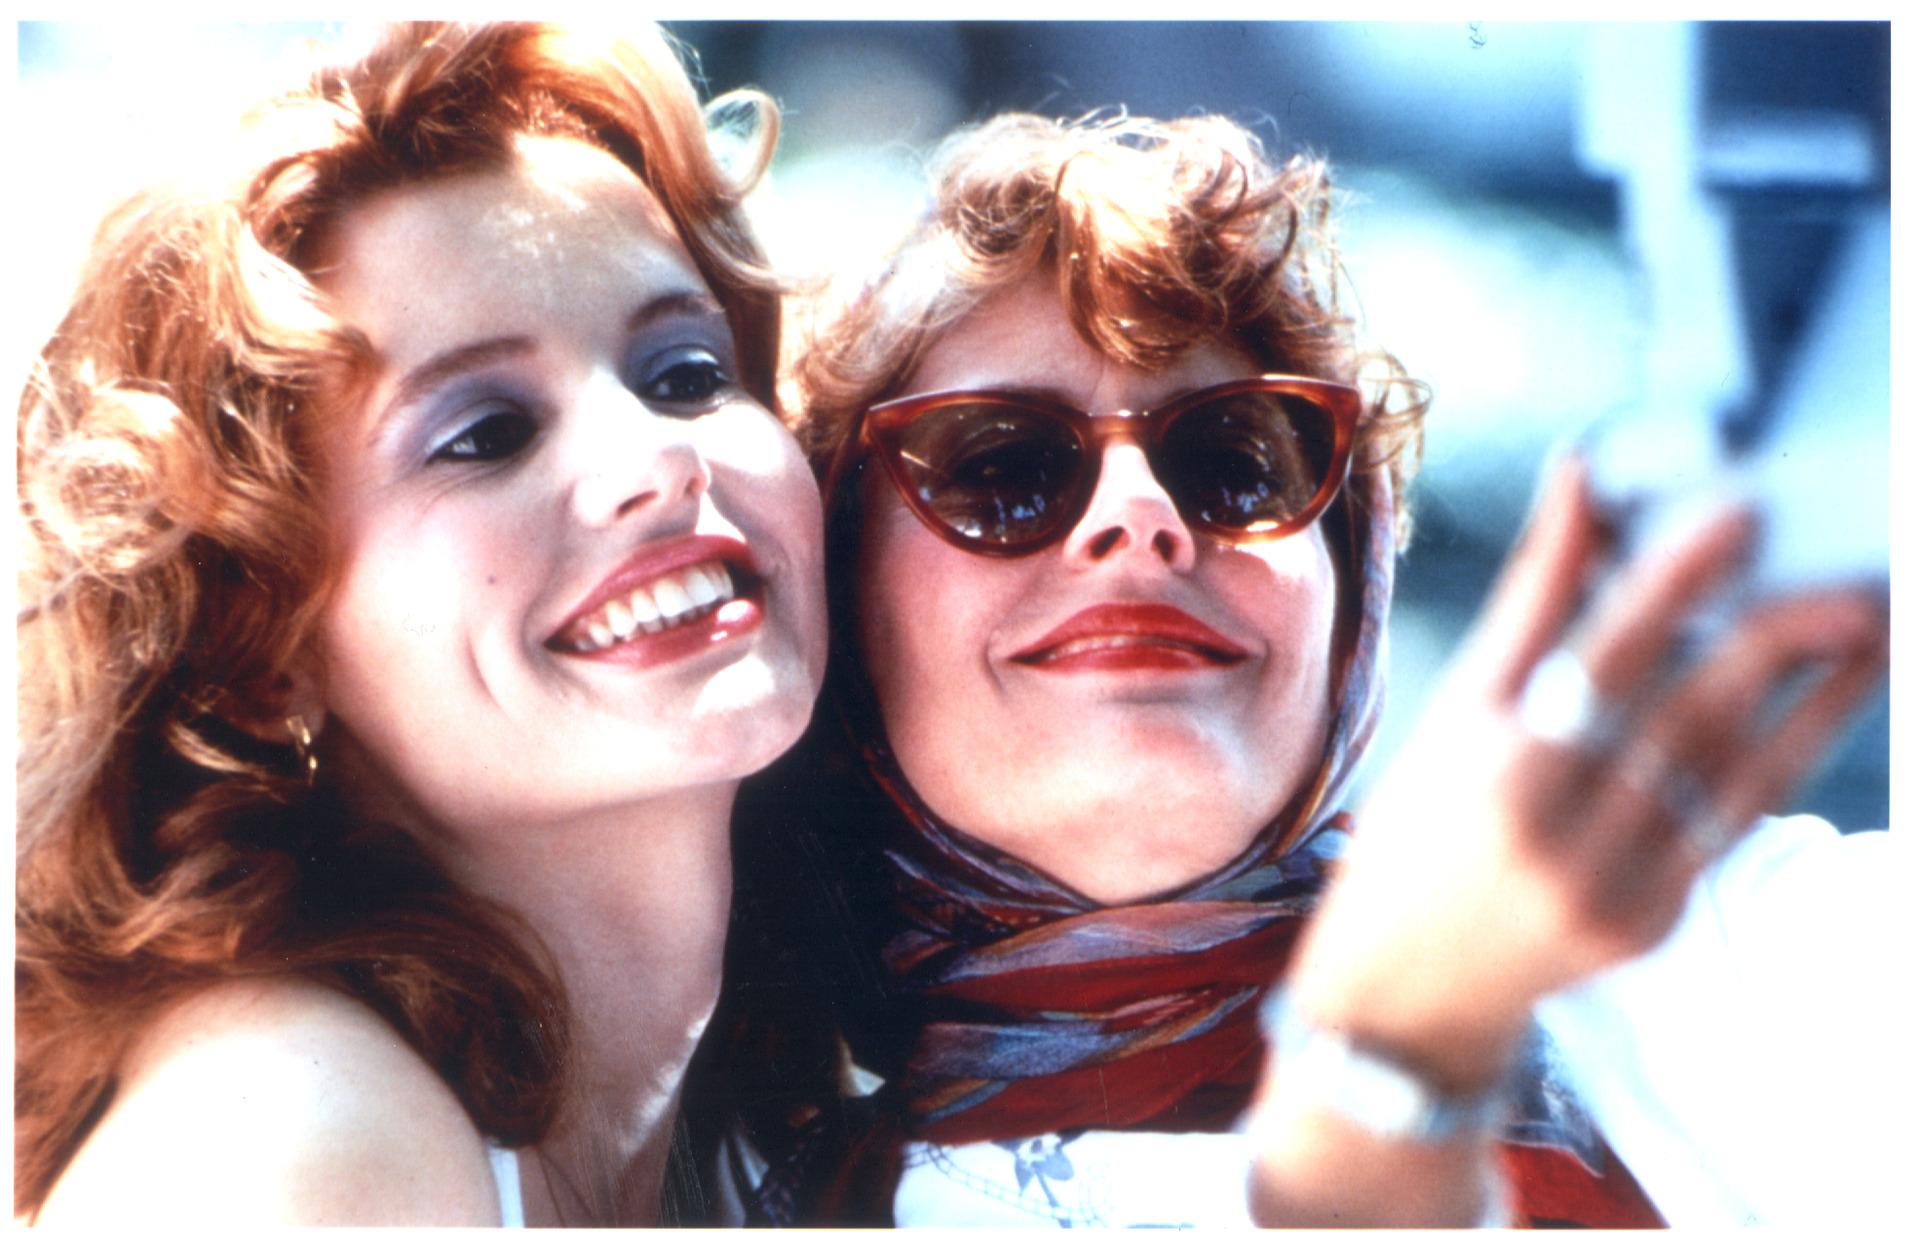 Hollywood star Geena Davis of Thelma & Louise joins Auckland's Power of Inclusion summit